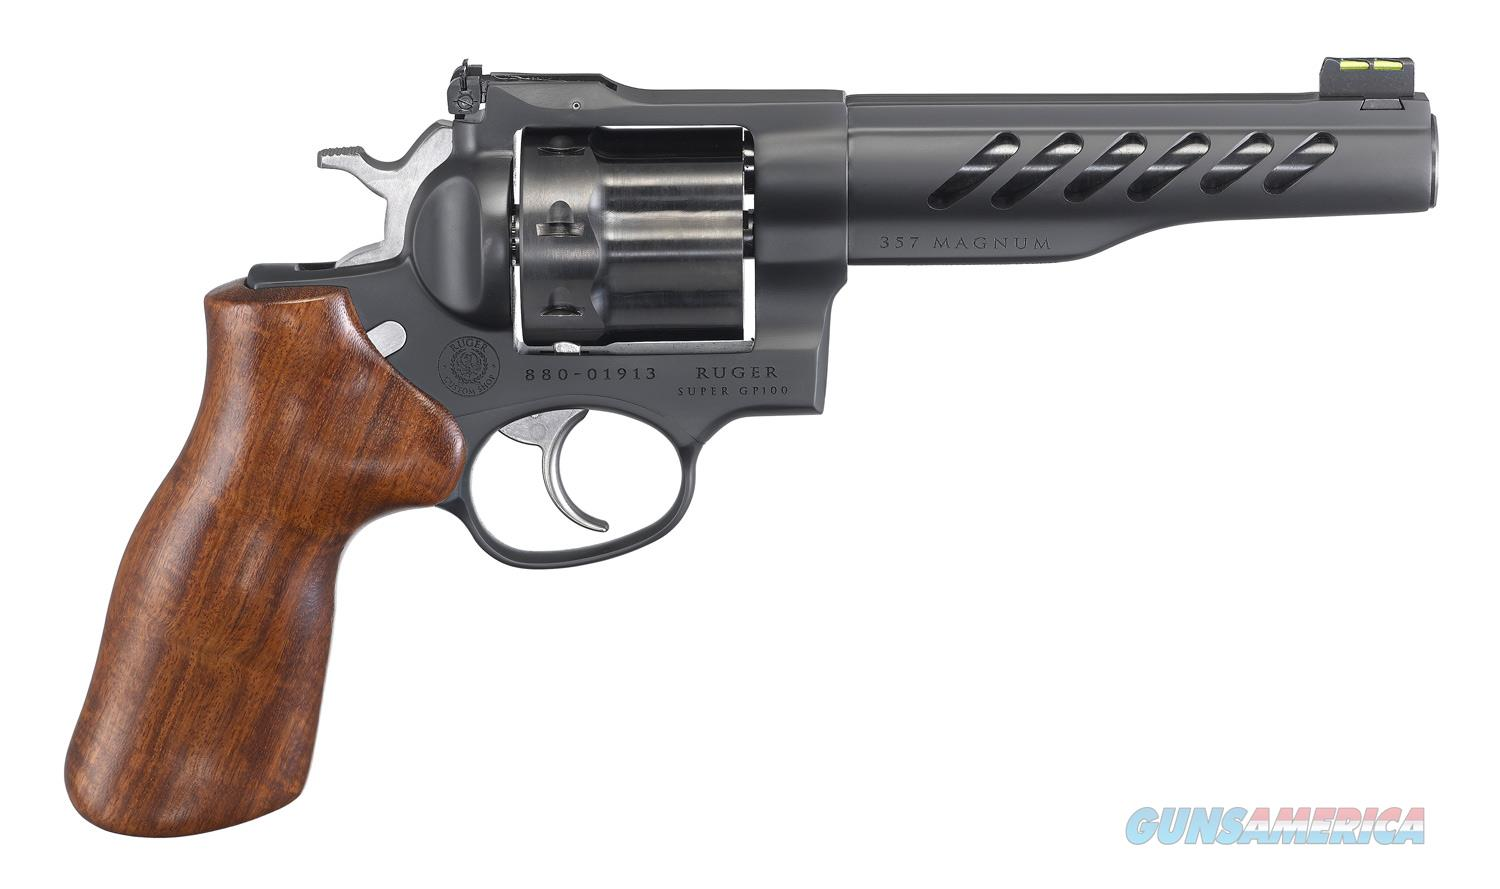 "Ruger Super GP100 Competition Custom .357 Mag 5.5"" 5065   Guns > Pistols > Ruger Double Action Revolver > GP100"